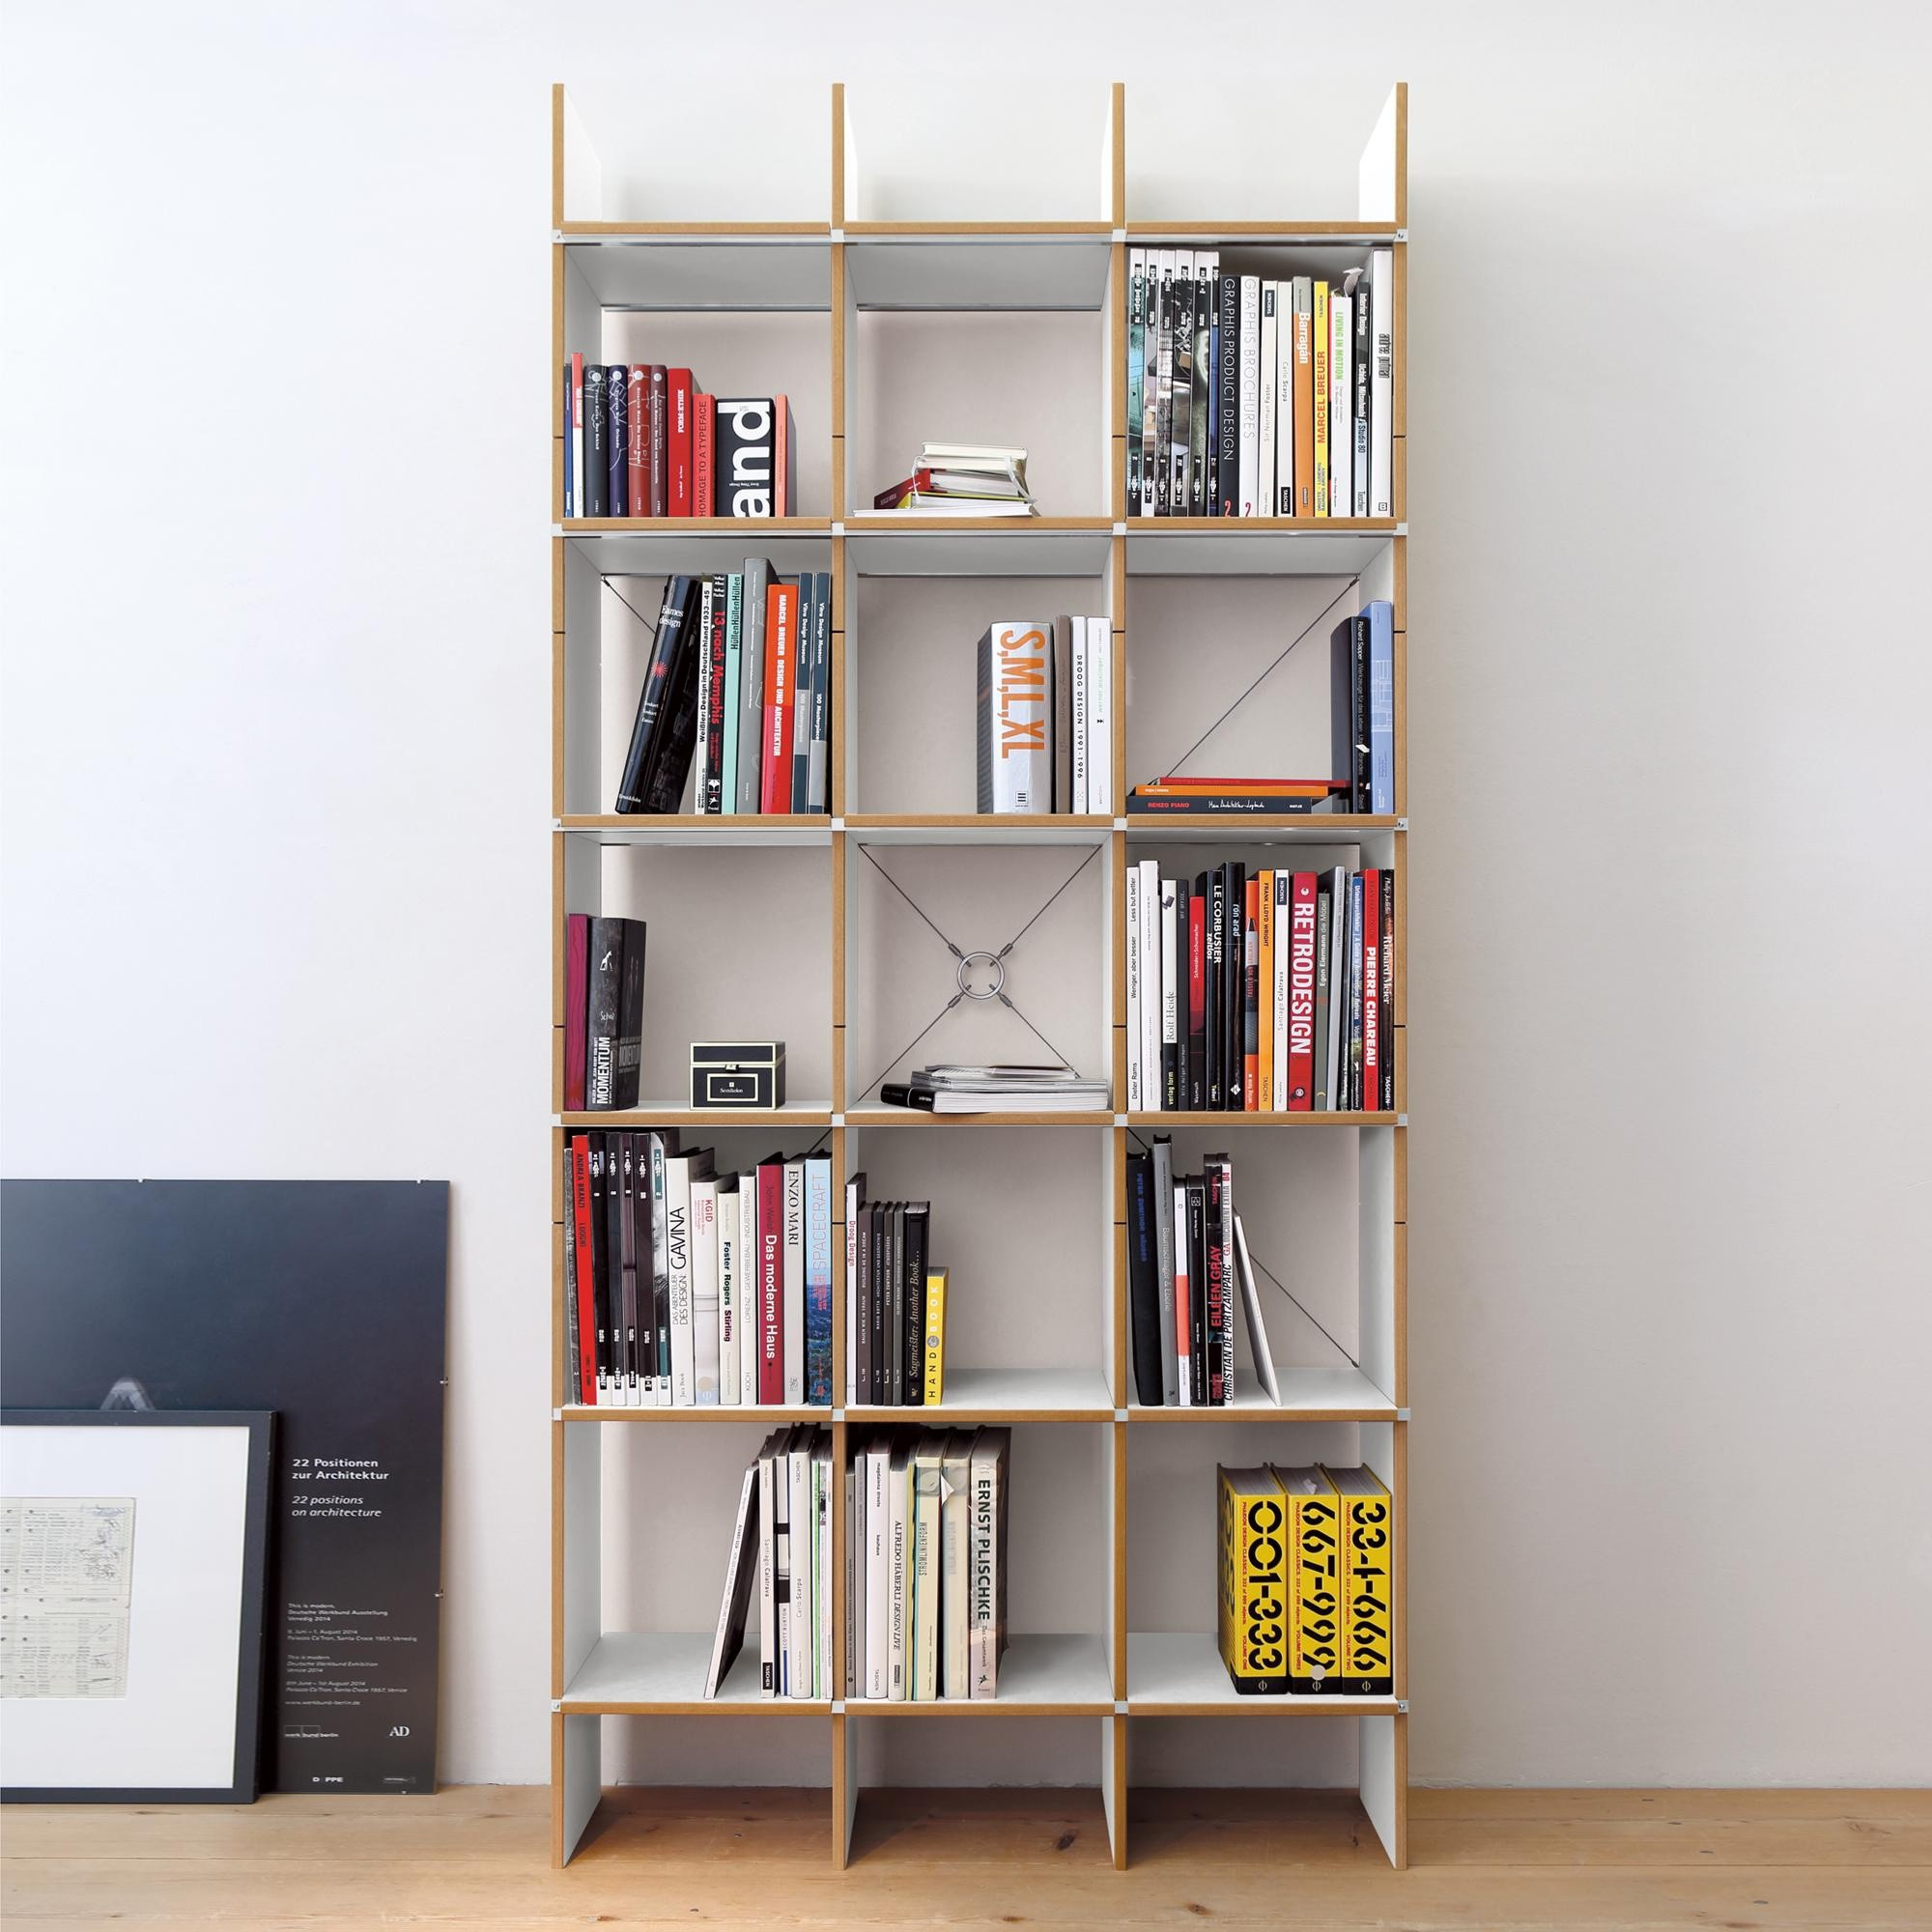 Regal Birke Moormann Fnp Shelf System 105x223cm | Ambientedirect